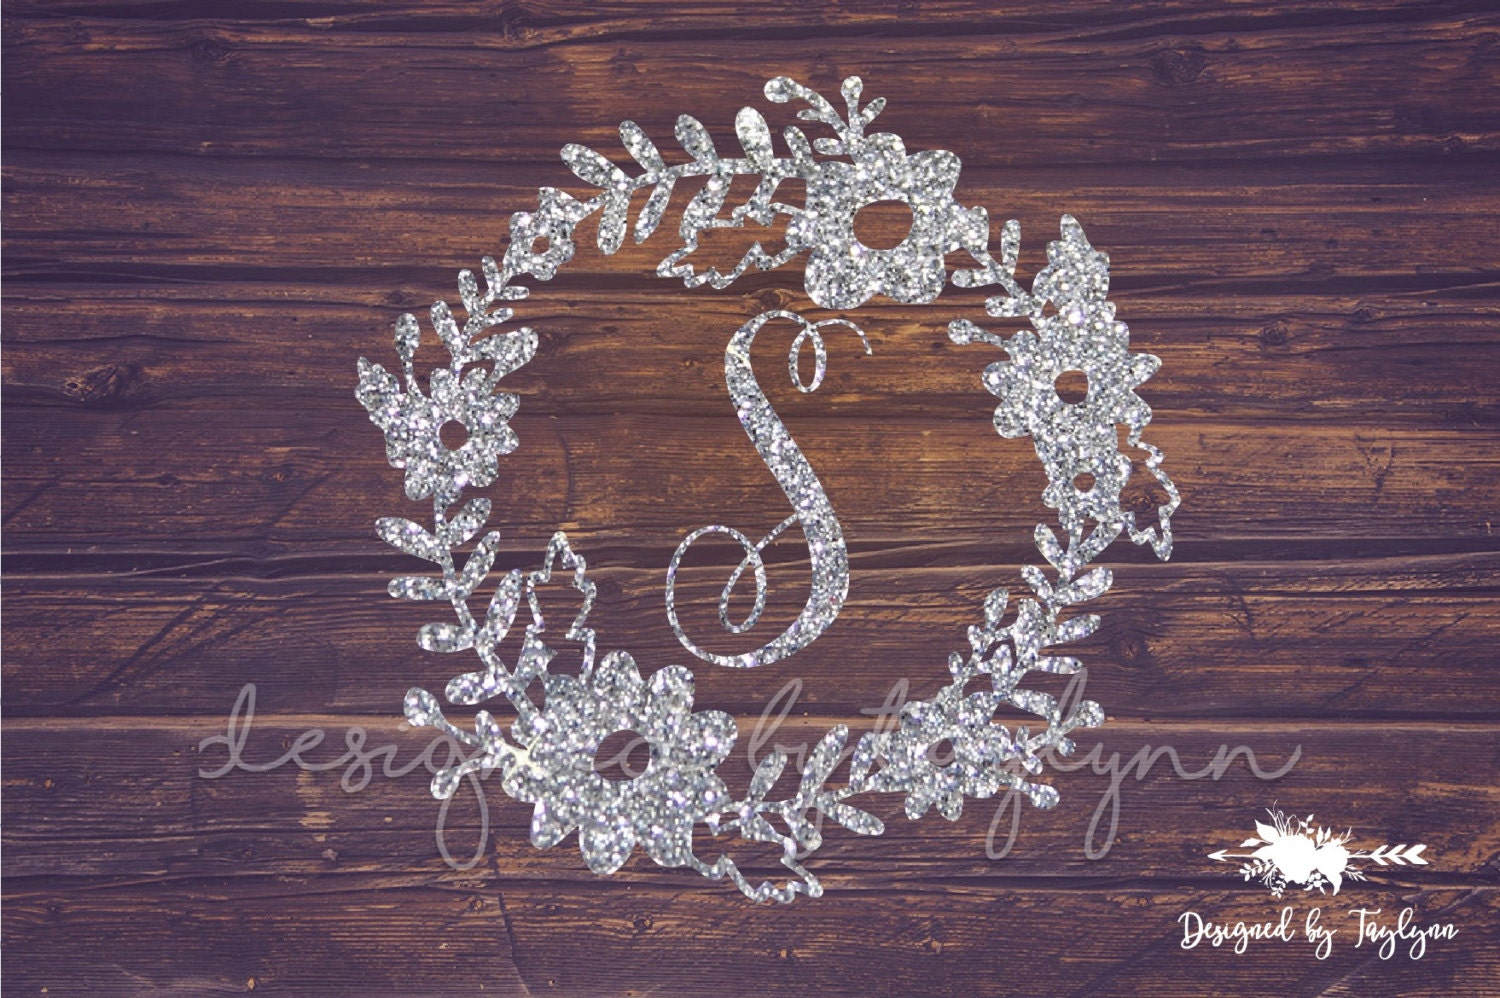 Glitter Flower Border Decal Floral Monogram Decal Decals